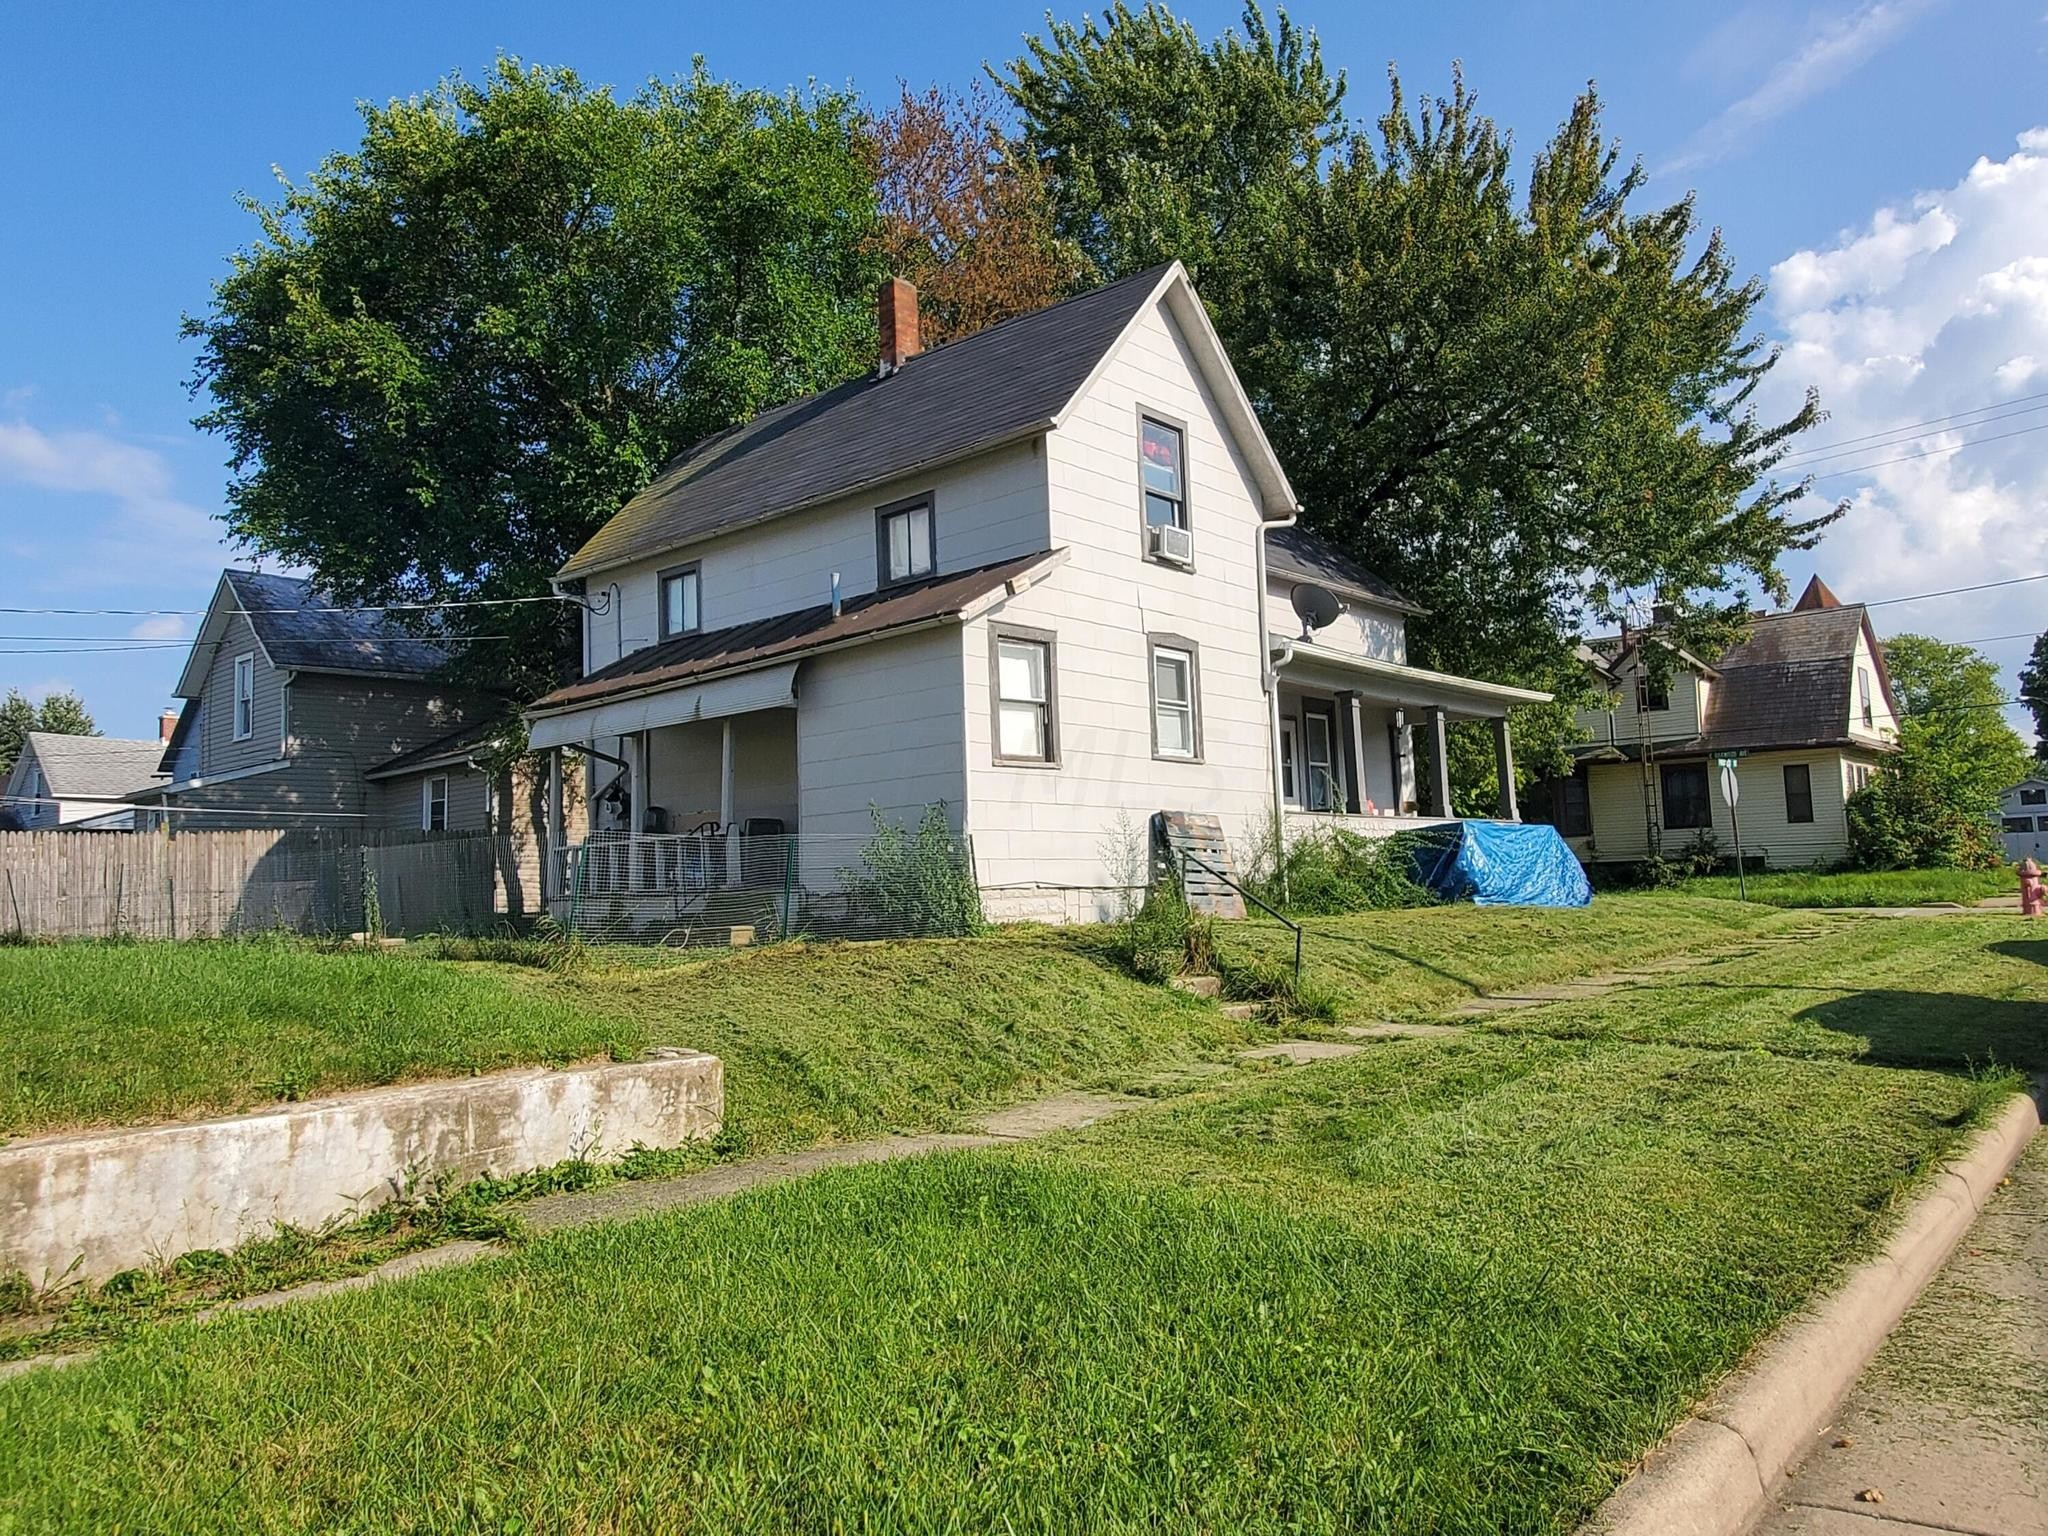 2-Story House In Bucyrus